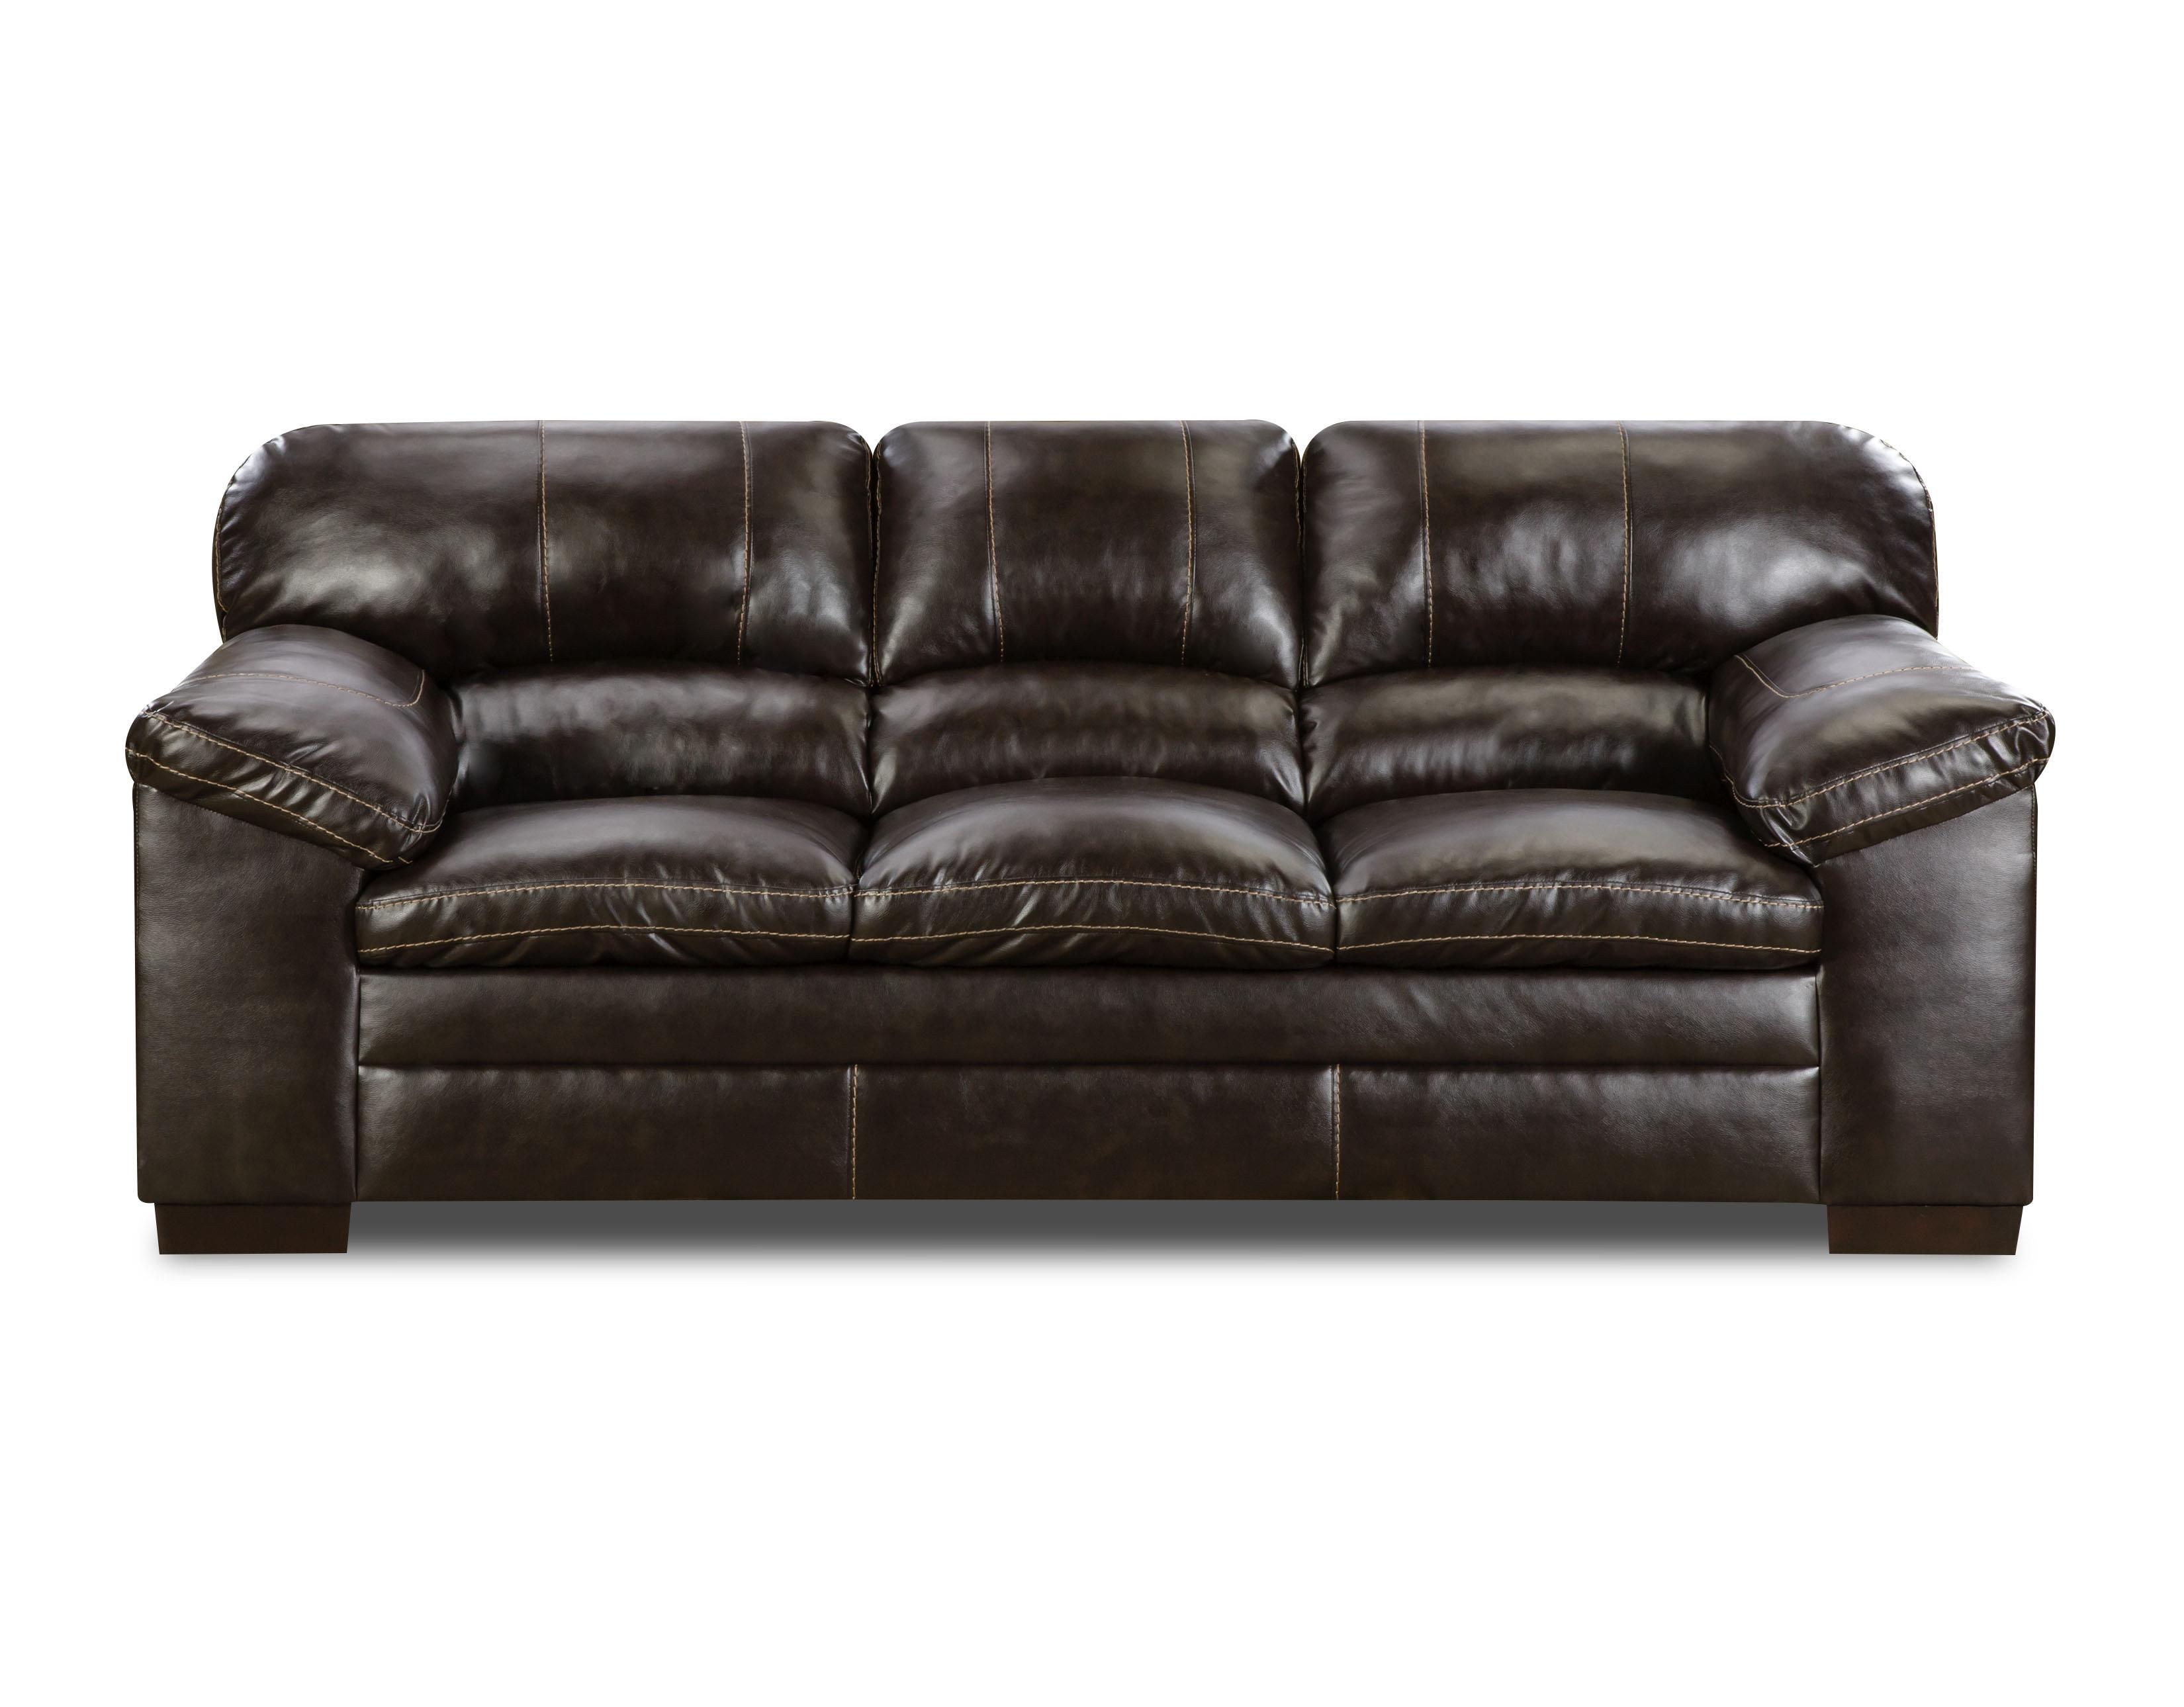 United Furniture Industries 8049 Sofa - Item Number: 8049 Bing Brown Sofa